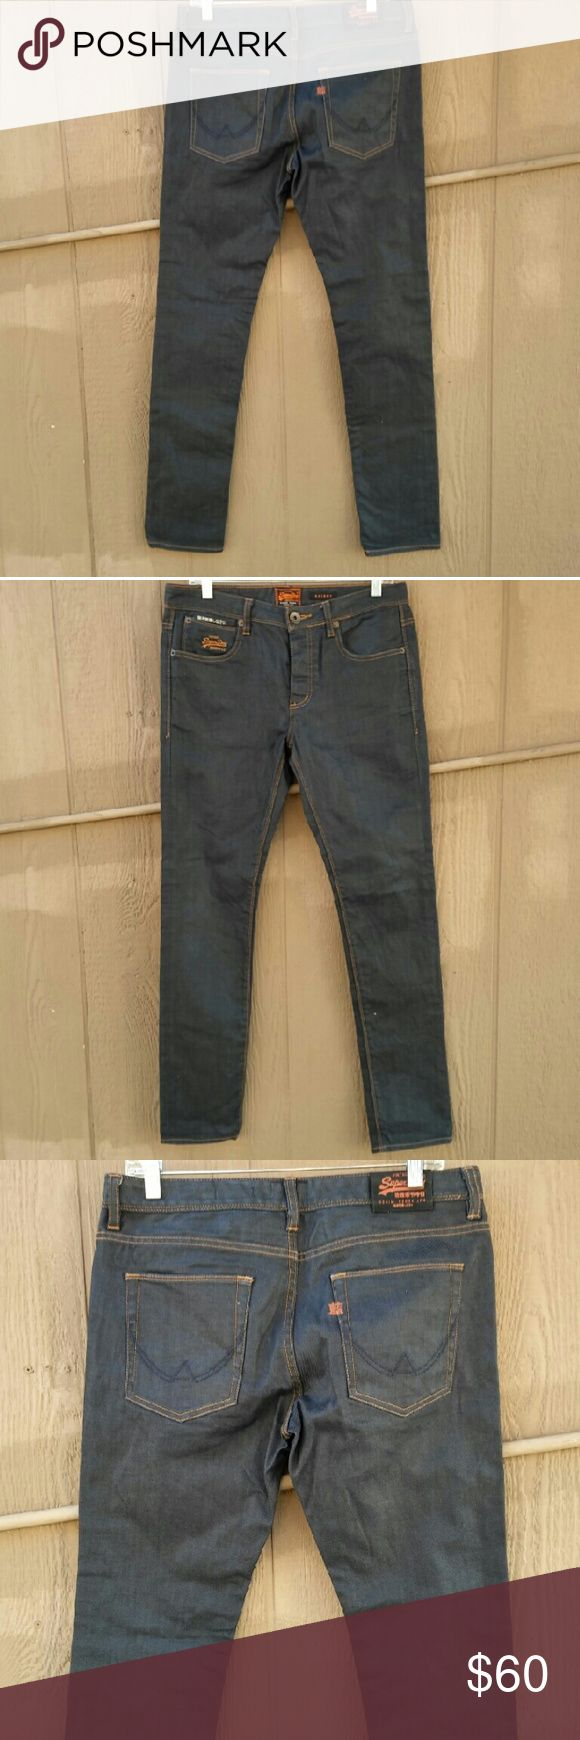 """SUPER DRY Men's Skinny Jeans Size 32 X 32"""" Jeans in pre-loved excellent condition. Dark wash, 98%cotton, 2%elastane. Waist measures 32 inches, rise is 9 inches, inseam is 32 inches and the leg opening is 13 inches. Superdry Jeans Skinny"""